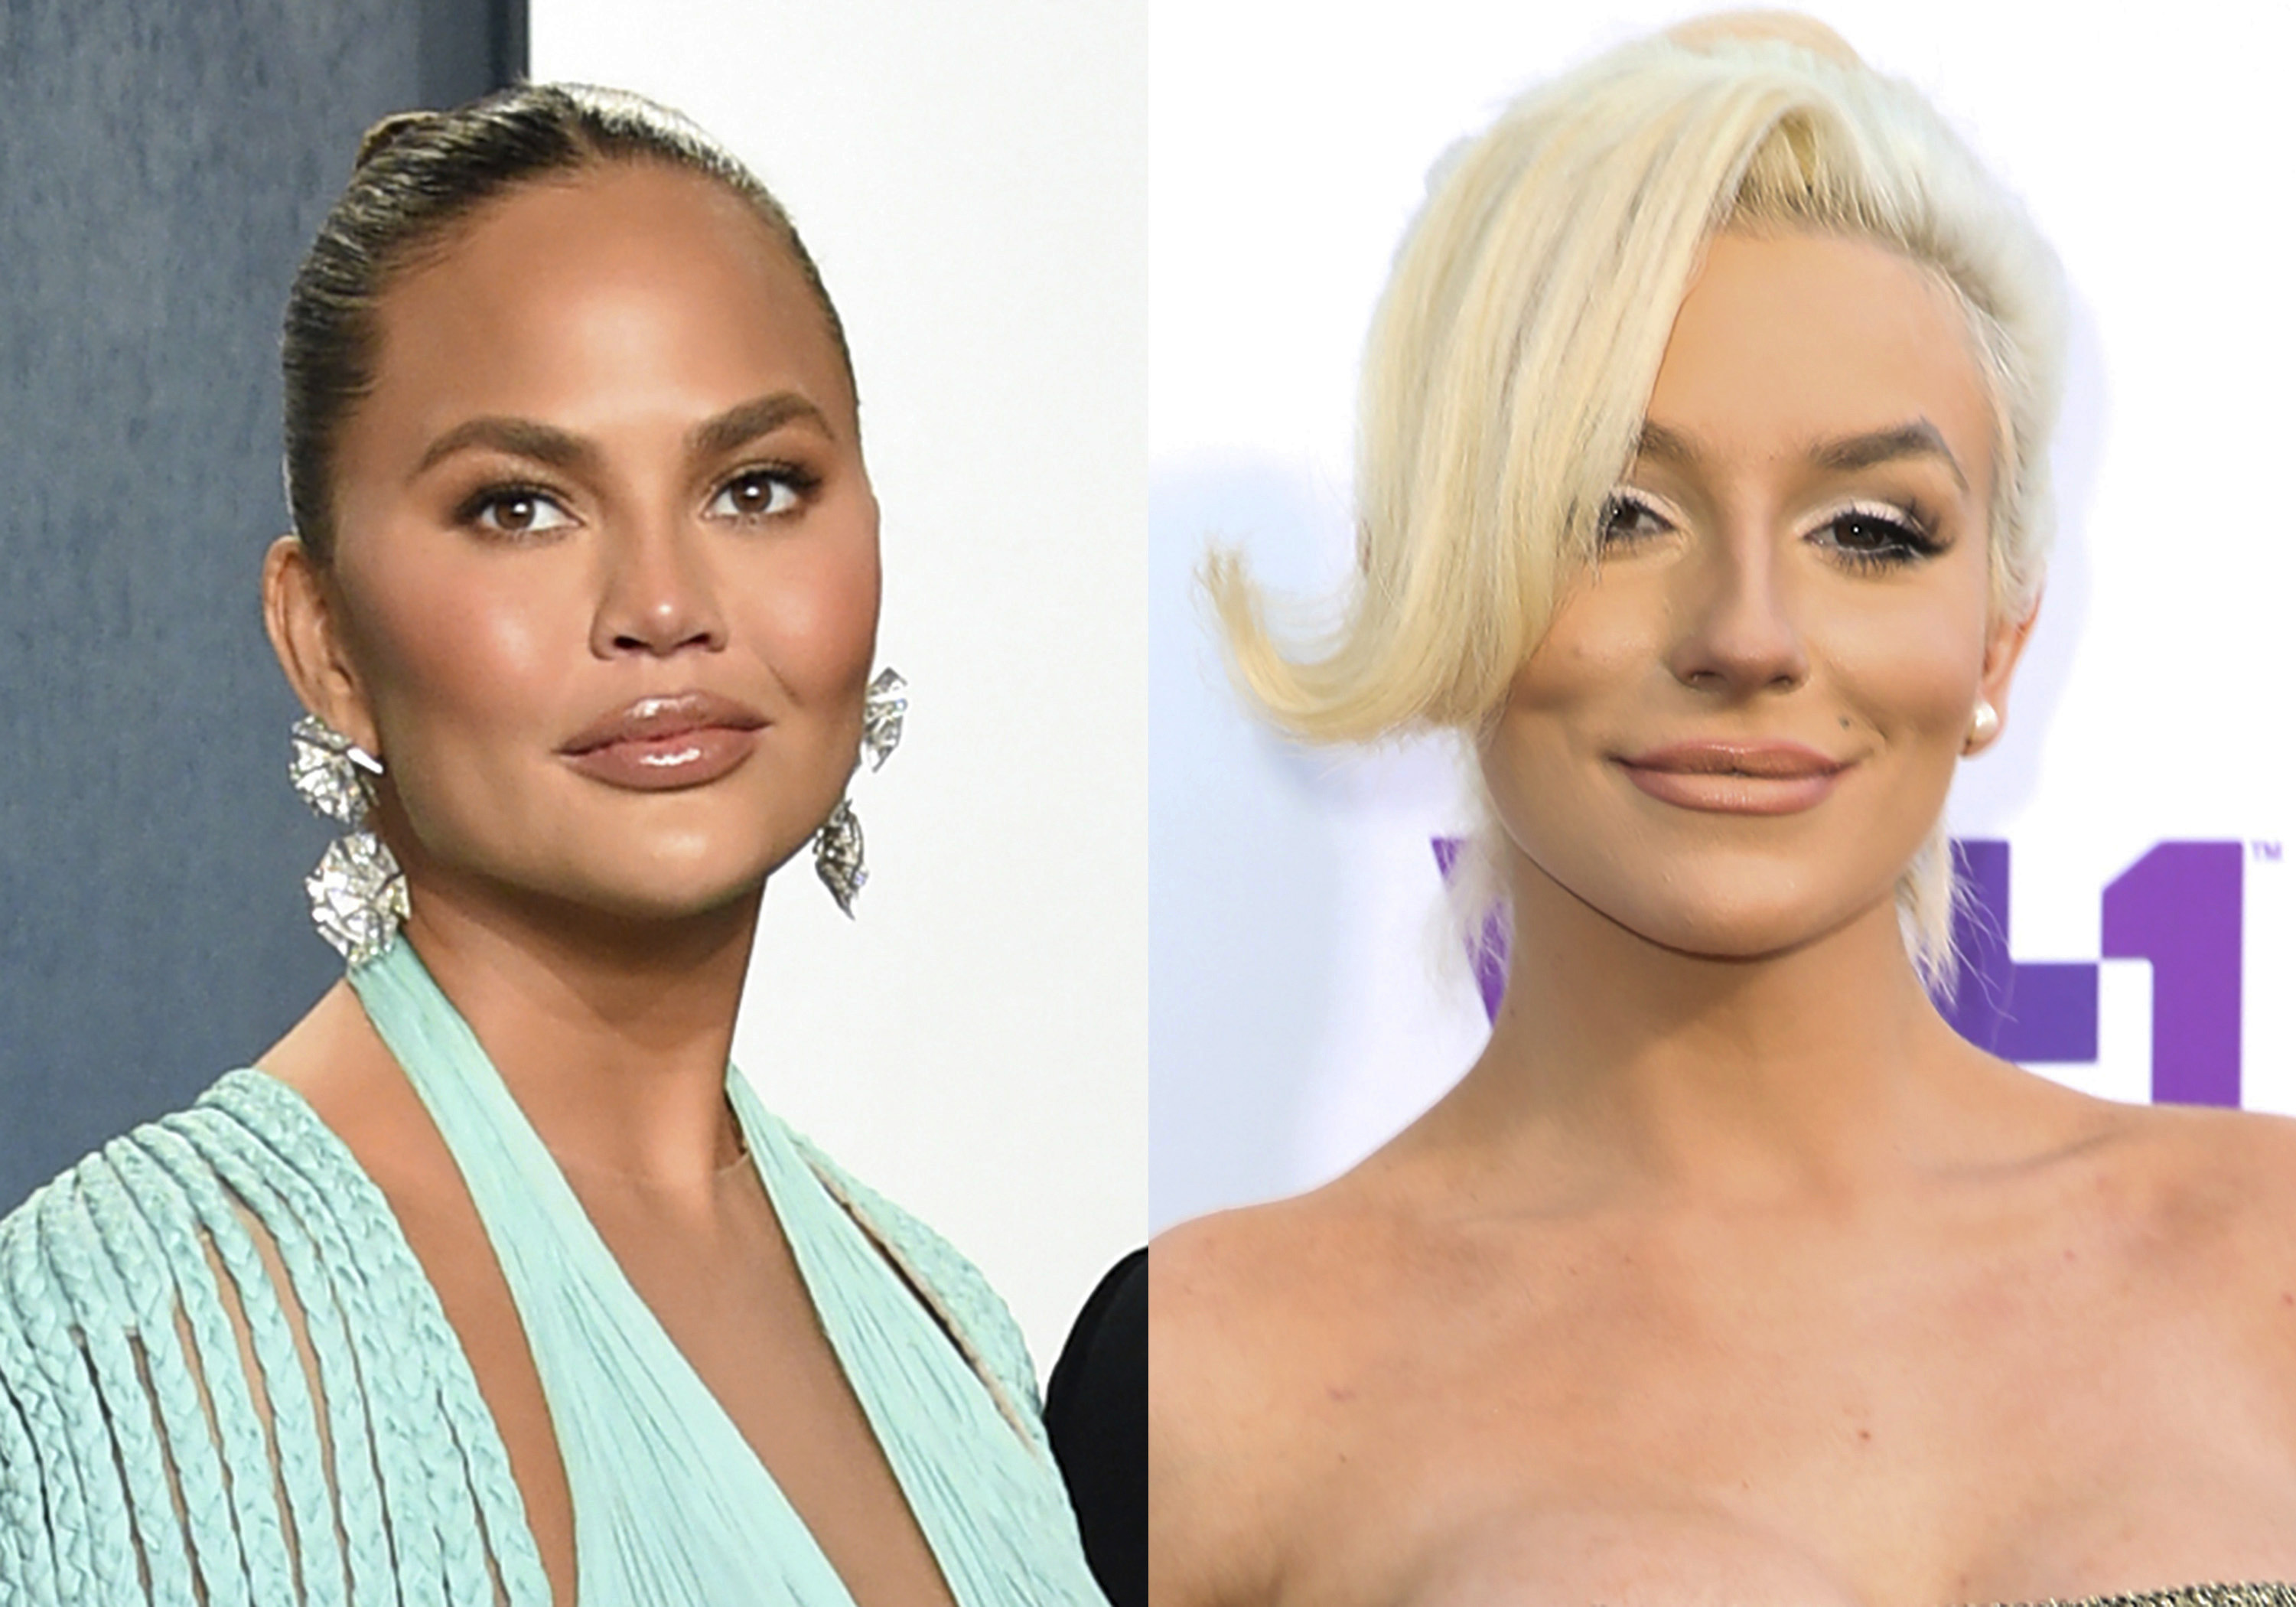 I have never heard from her': Courtney Stodden says Chrissy Teigen didn't  apologize after Twitter scandal - pennlive.com